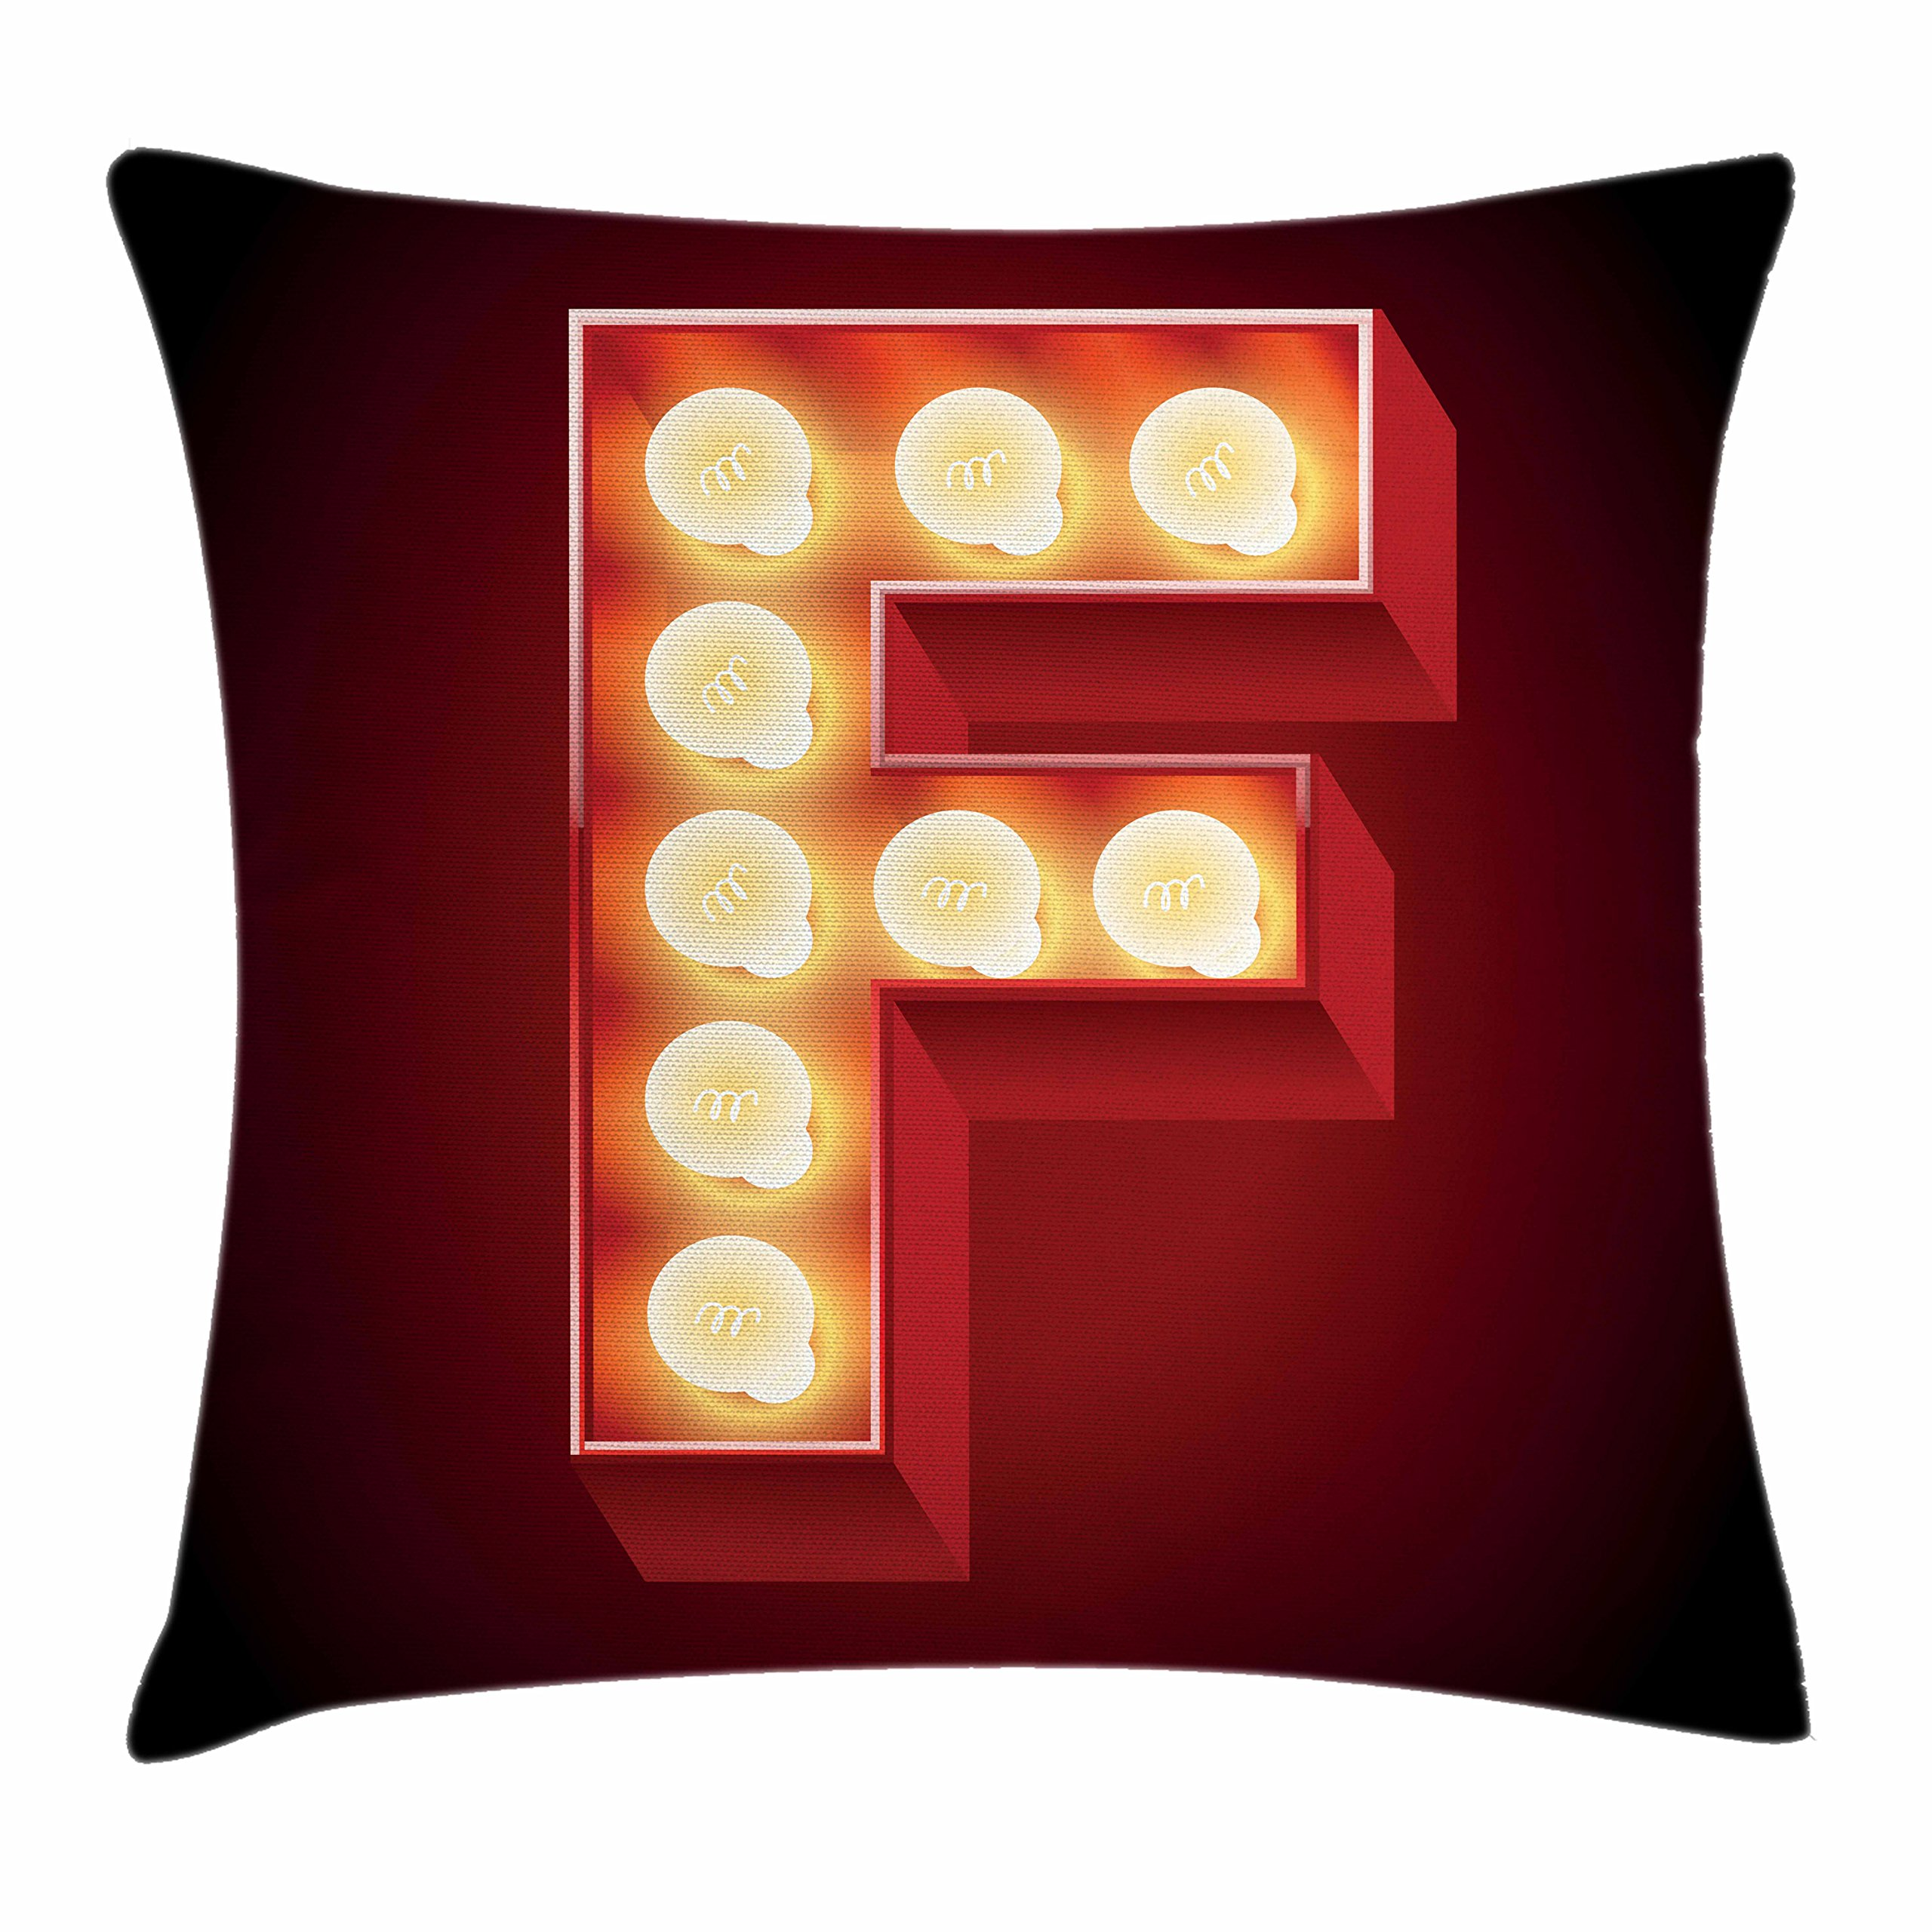 Ambesonne Letter F Throw Pillow Cushion Cover, Capital F Typescript Nightlife Disco Clubs Casino Movie Theater Font Print, Decorative Square Accent Pillow Case, 24 X 24 Inches, Ruby Yellow Black